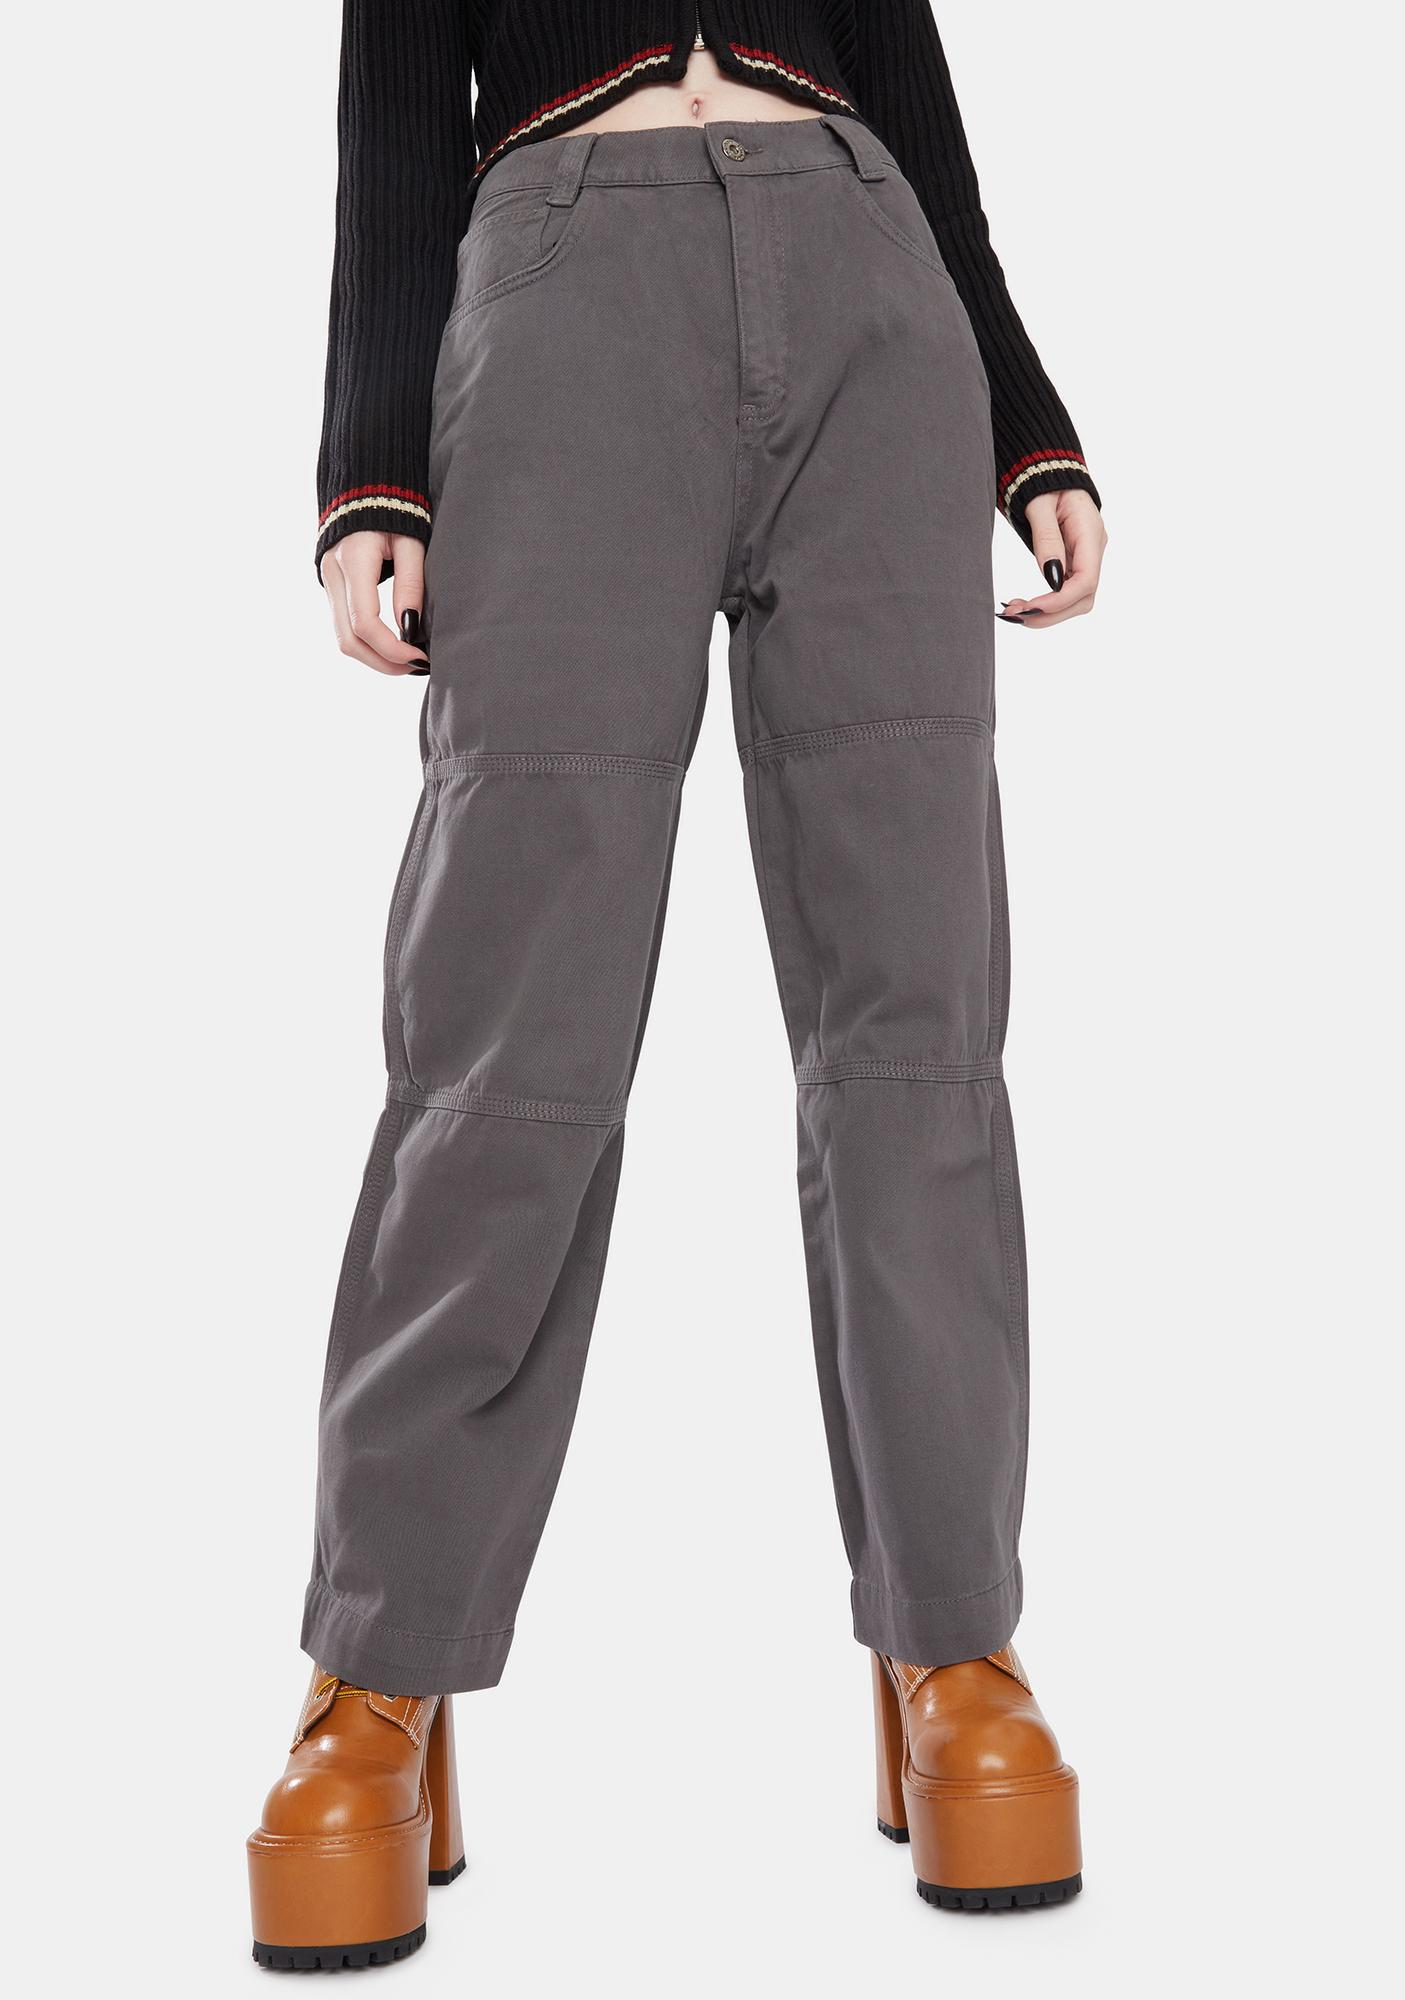 Kickers Paneled Utility Trouser